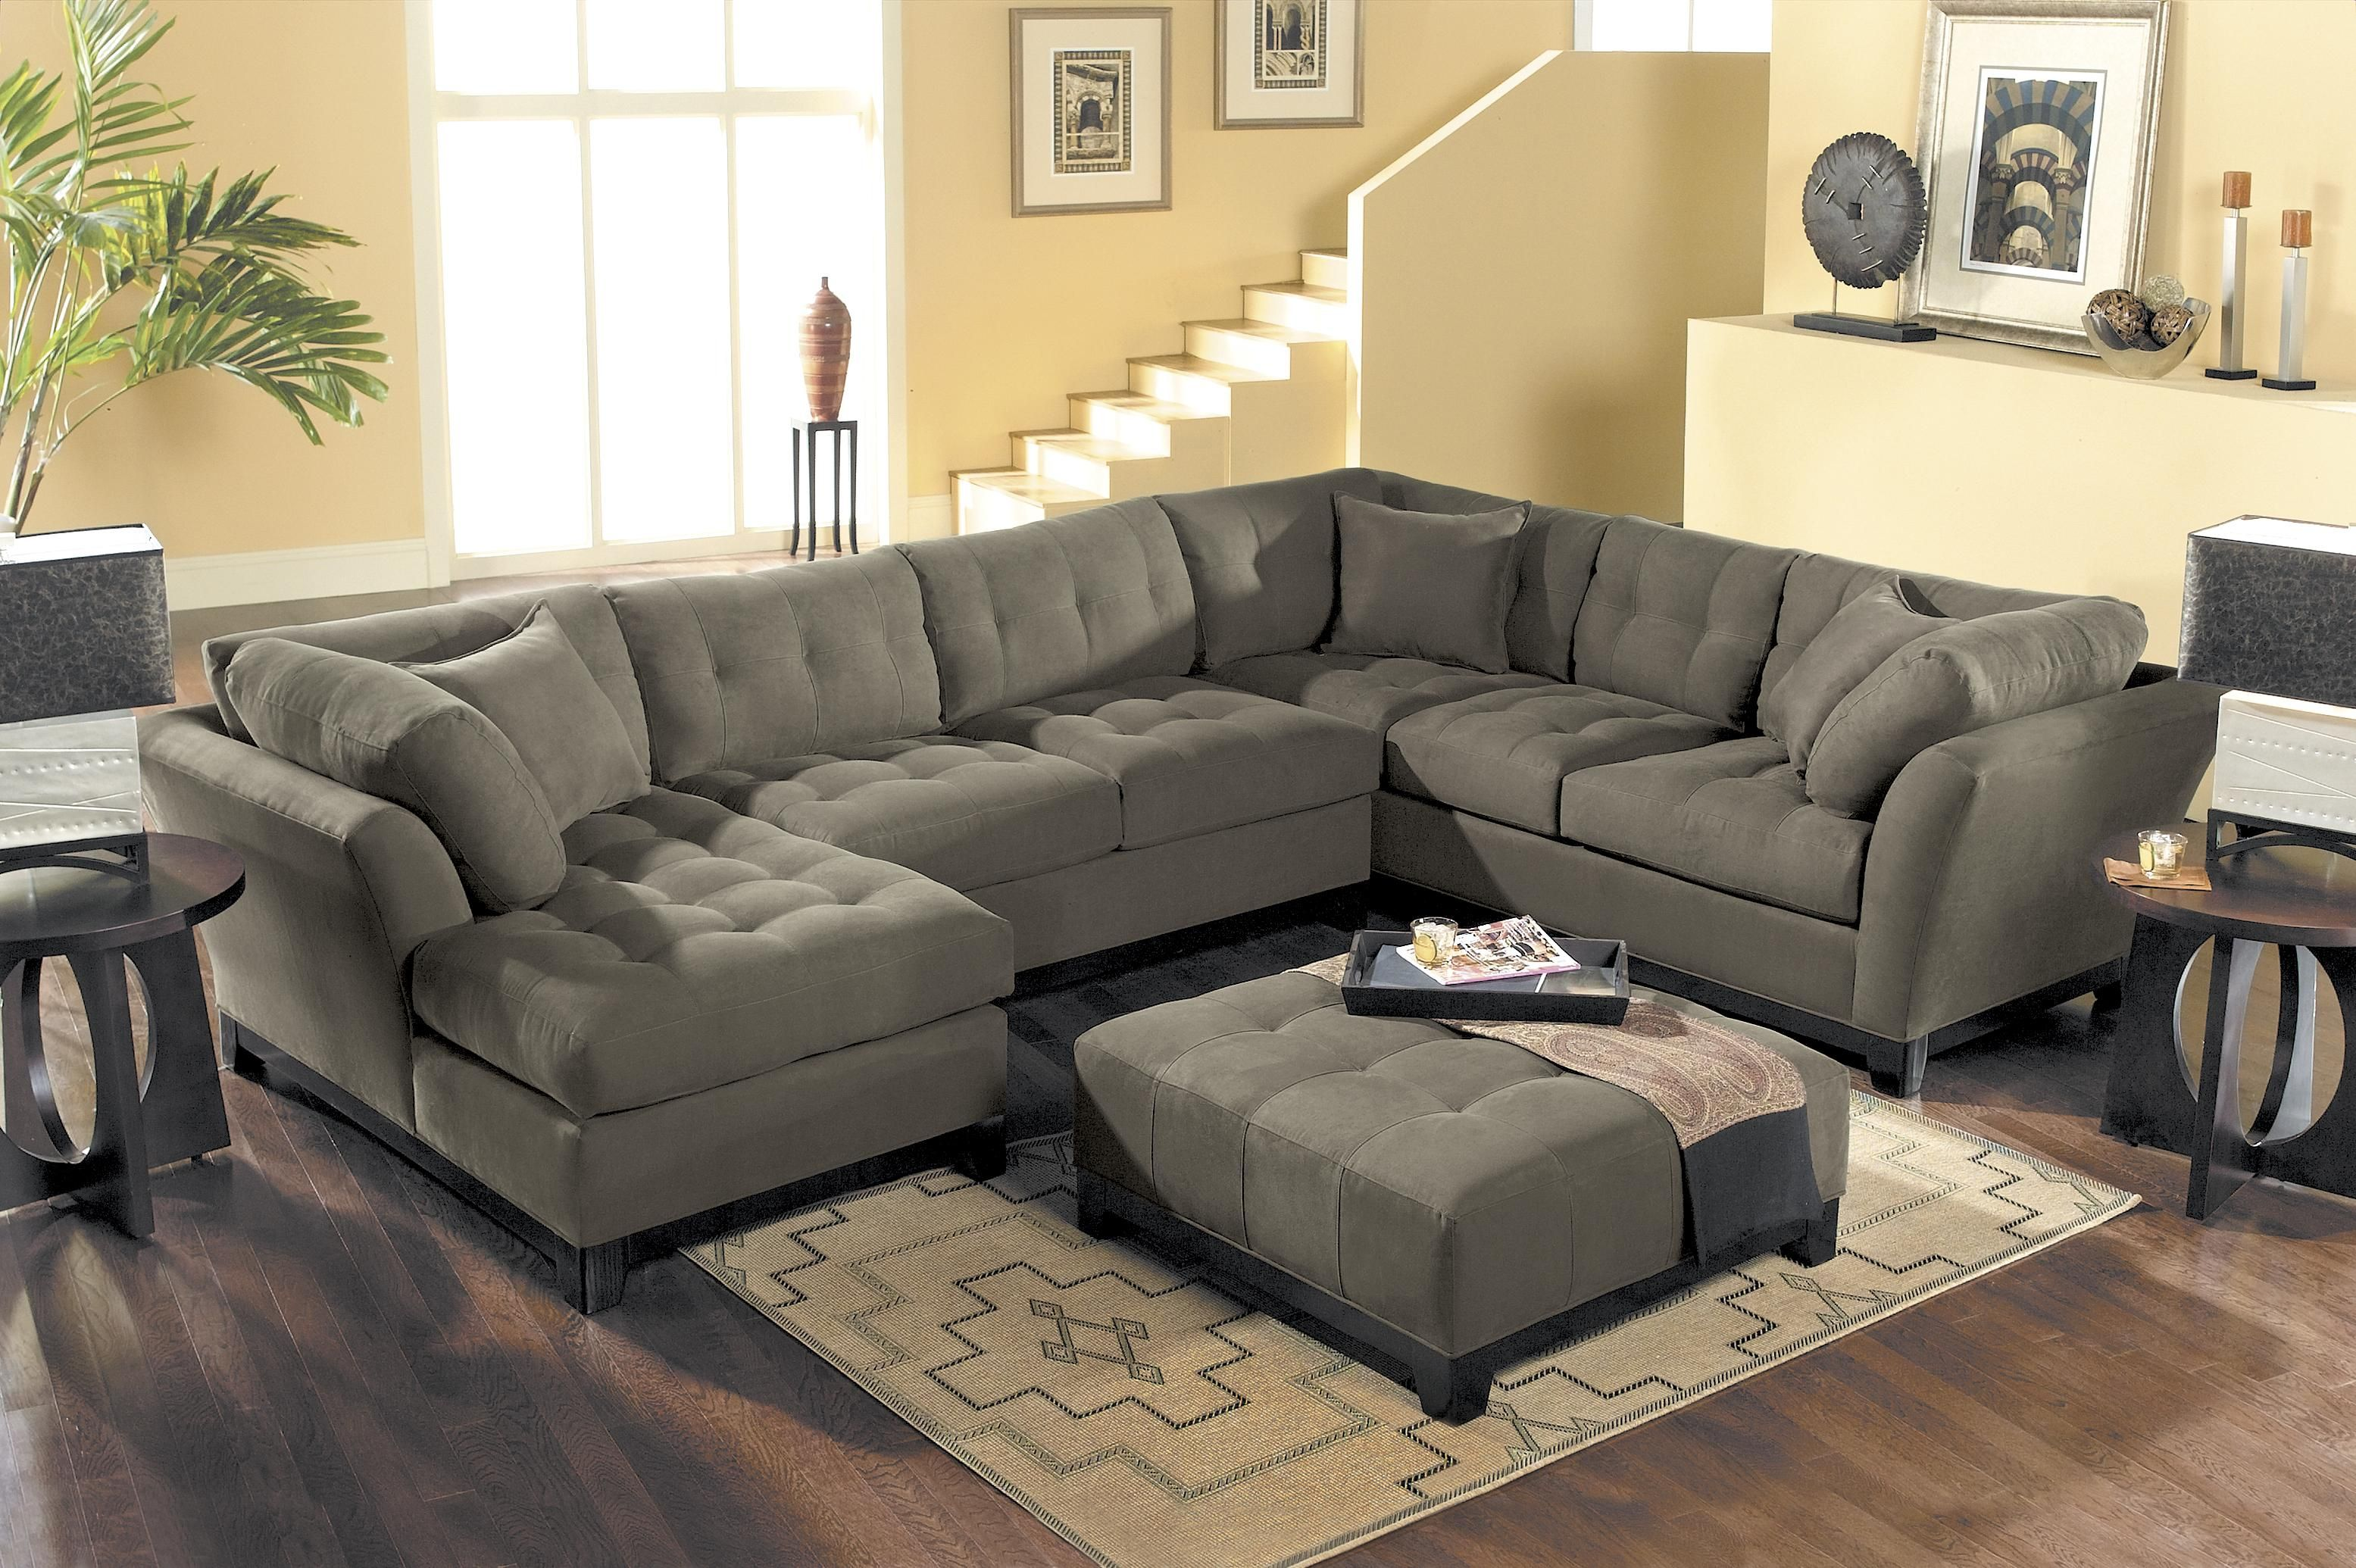 contemporary couches ri and rotmans l ma couch england collections sectional sofas item new worcester providence boston shaped shambala lsg sofa